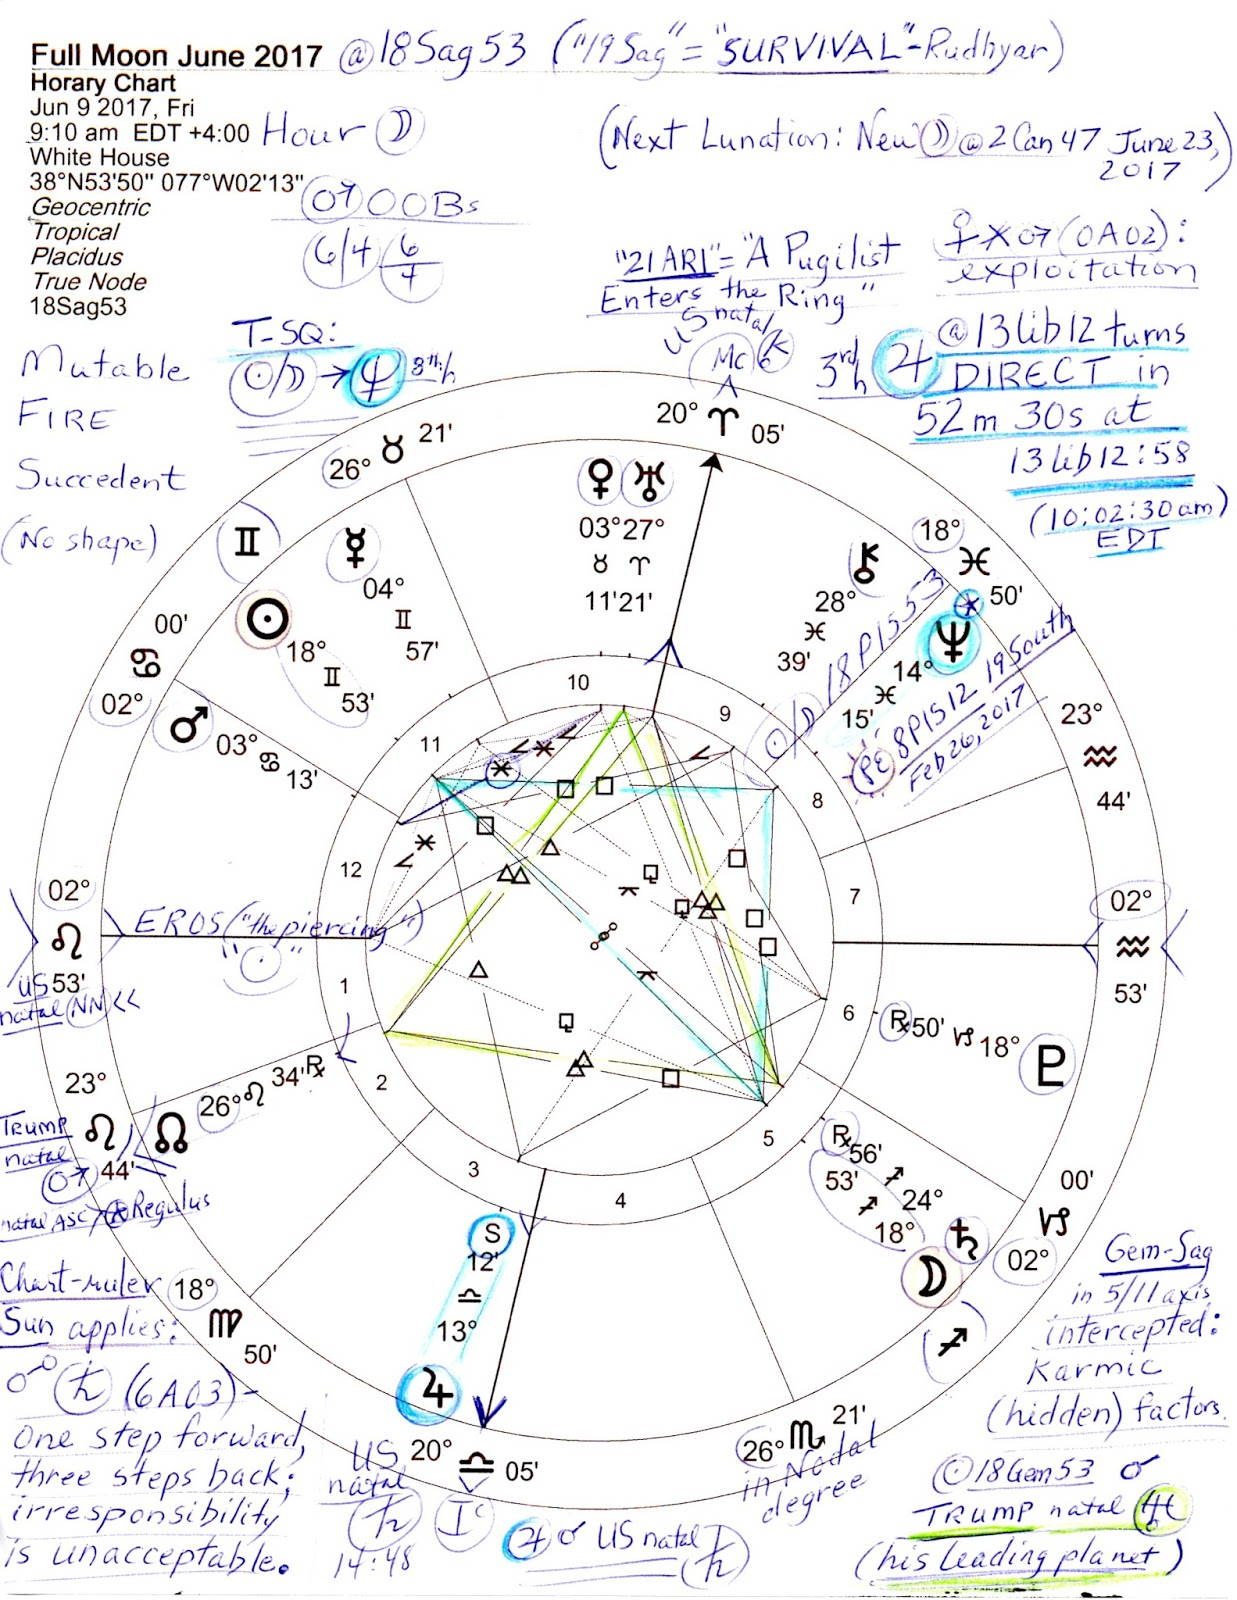 Stars over washington april 2017 this full moon horoscopes asc desc house cusps are in the same signs as those of mr trumps natal horoscope though in earlier degrees and the june full nvjuhfo Choice Image